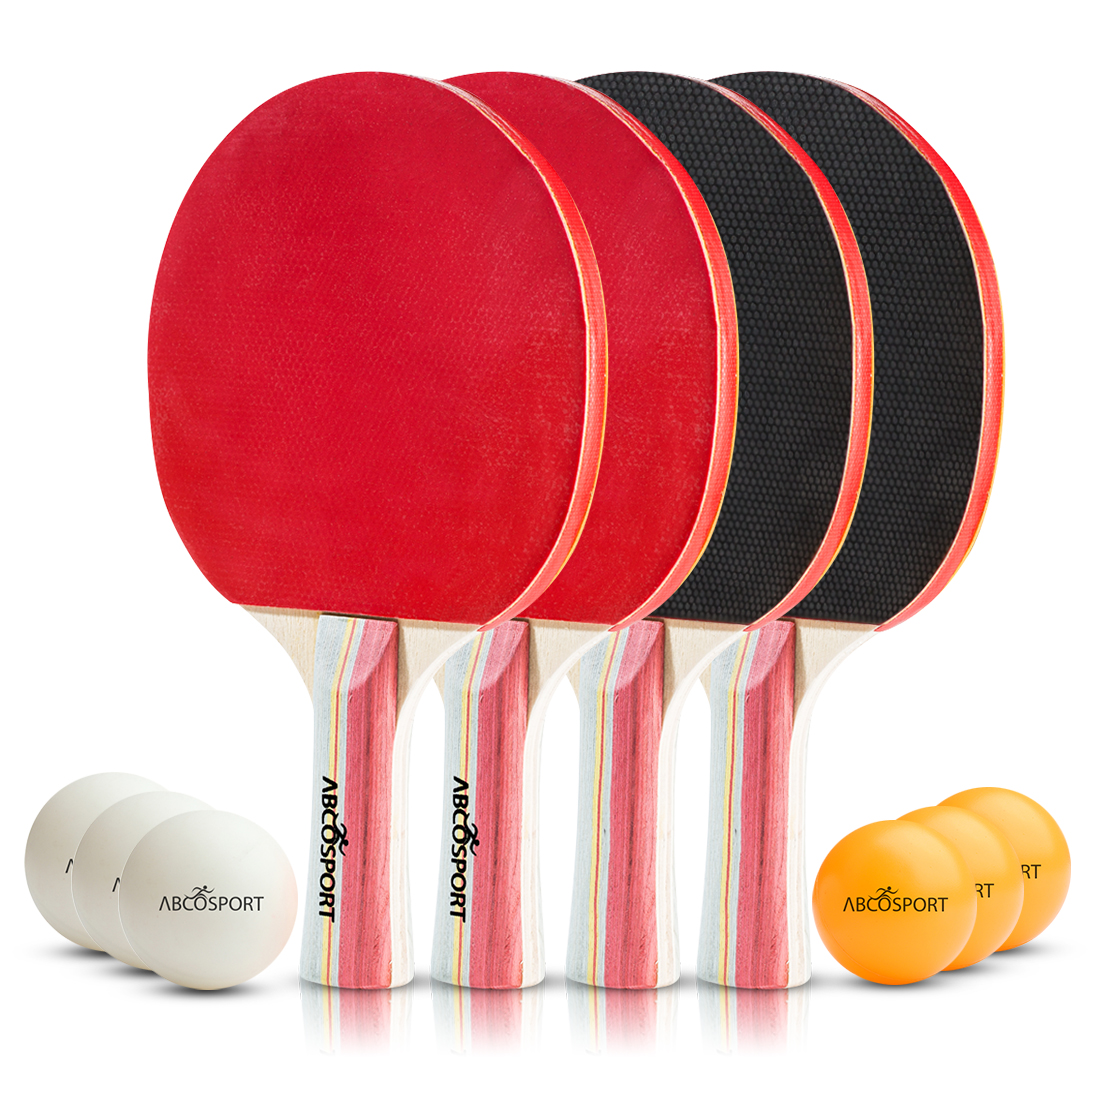 Abco Ping Pong Set � Pack of 4 Premium Ping Pong Paddles Rackets and 6 Ping Pong Balls � 5 Ply Blade with 5.6 MM... by